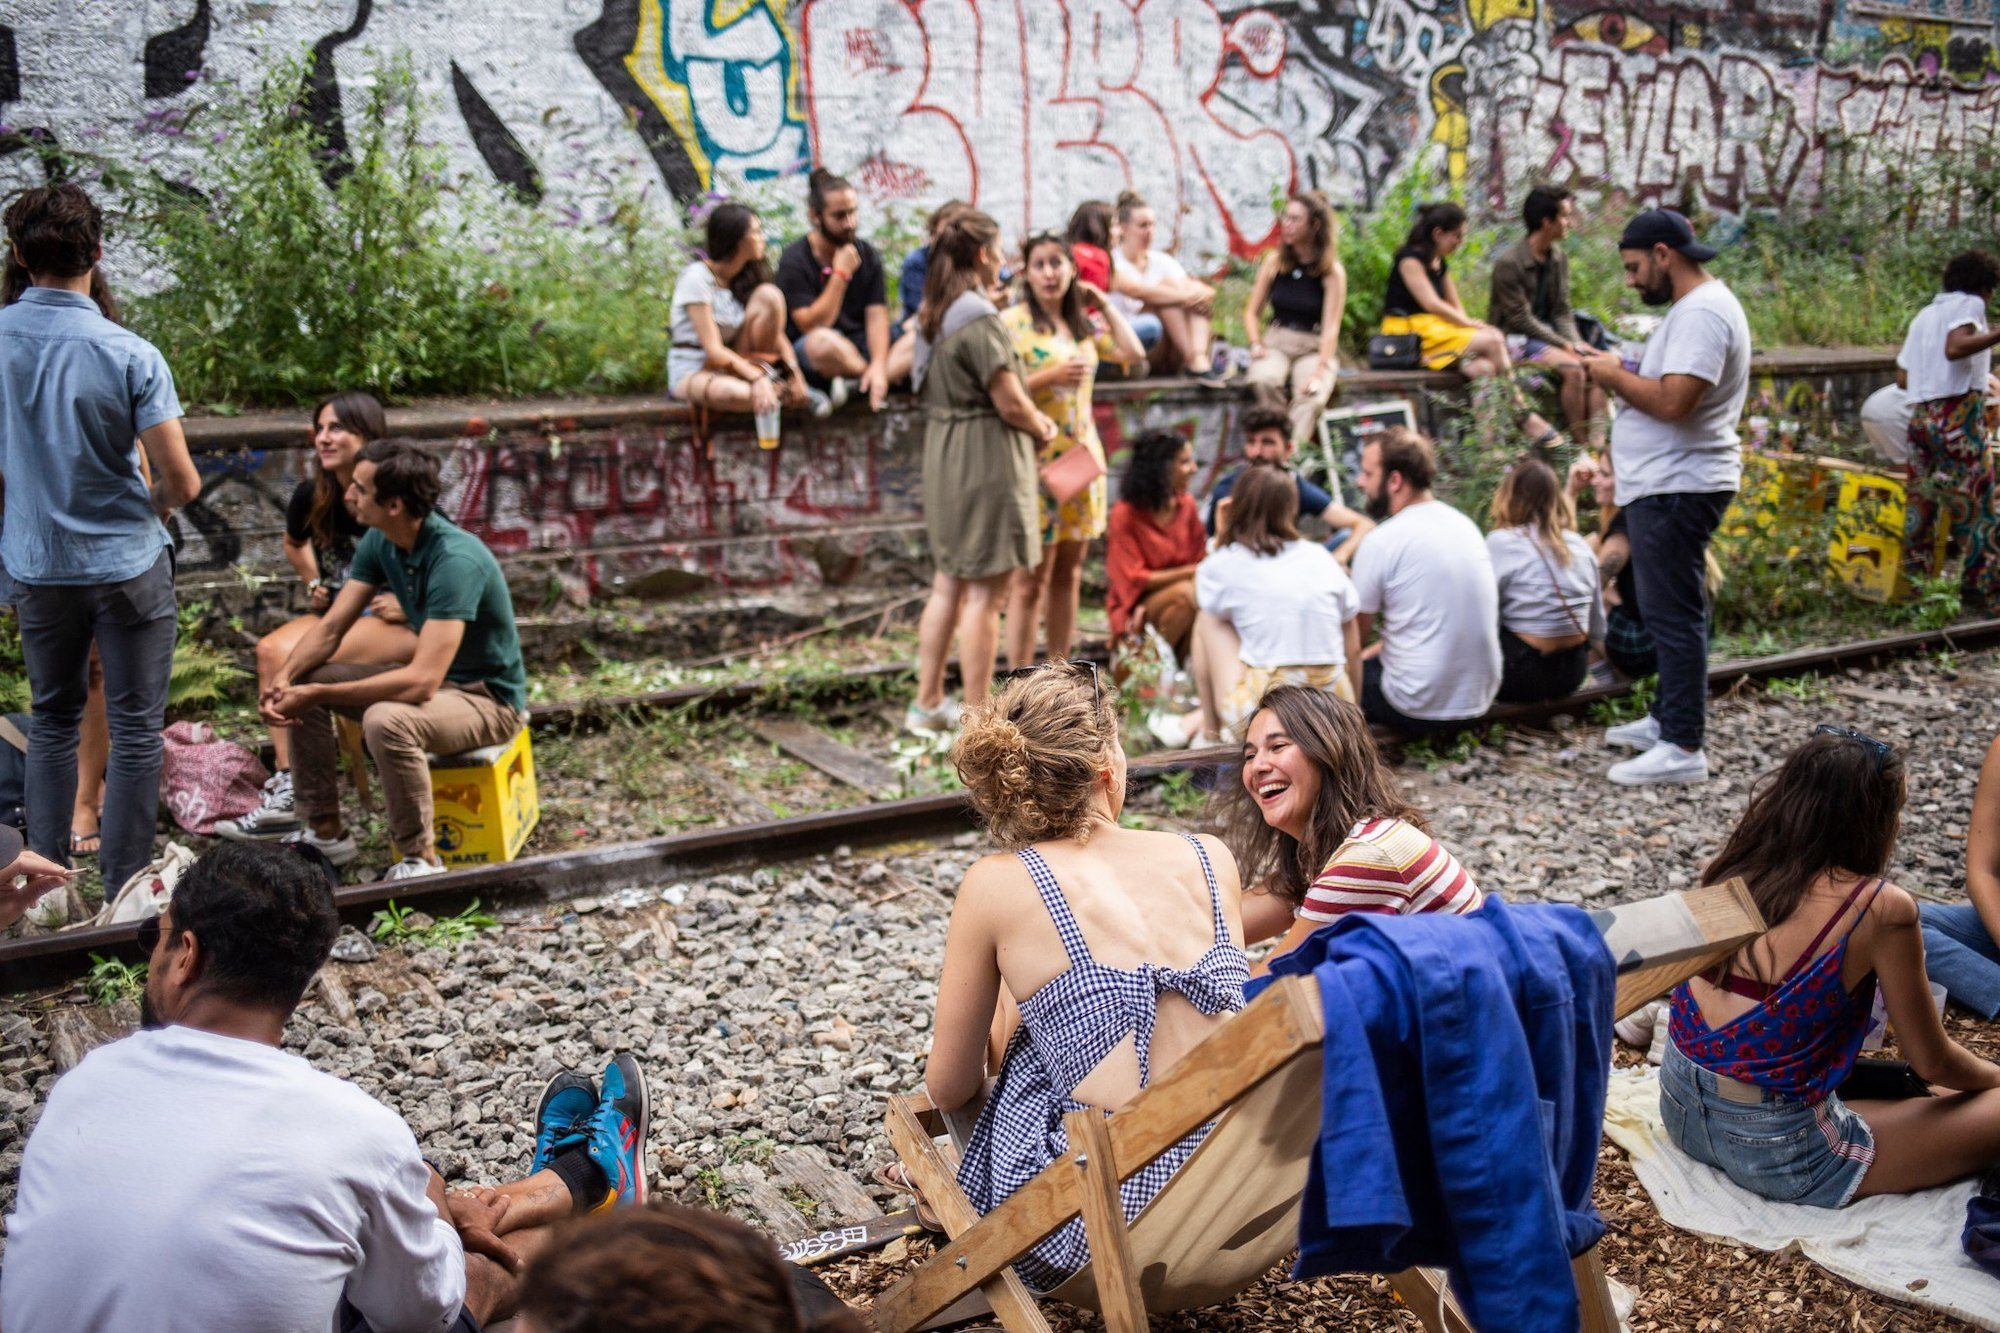 People sitting on the abandoned railway at the Hasard Ludique culture hub in Paris with graffiti-adorned walls.